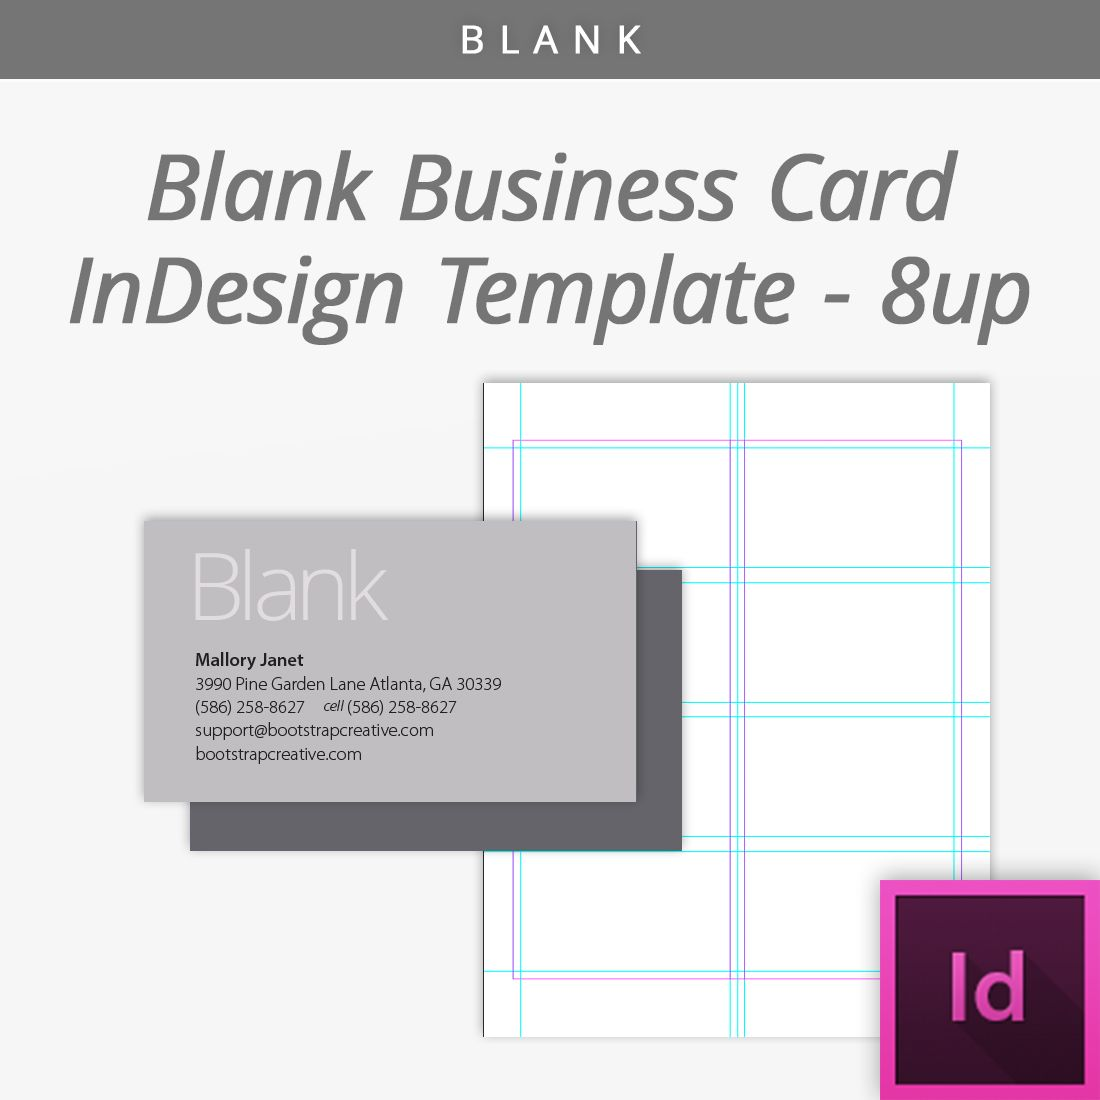 Blank indesign business card template 8 up free download blank indesign business card template 8 up free download designtemplate flashek